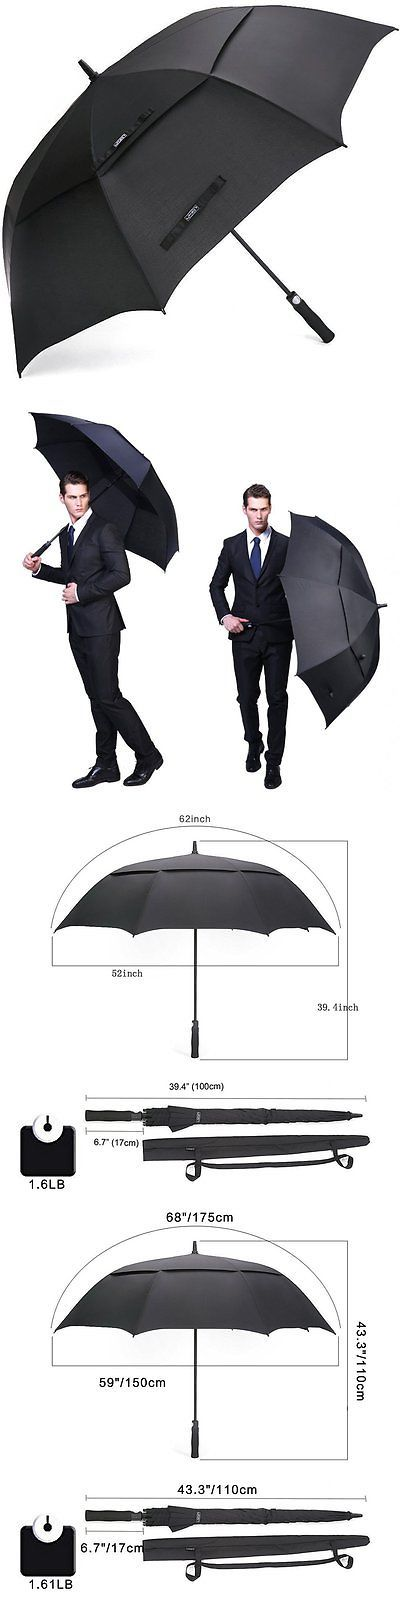 Golf Umbrellas 18933: G4free 62 Automatic Open Golf Umbrella Extra Large Heavy Duty Double Canopy Usa -> BUY IT NOW ONLY: $31.71 on eBay!